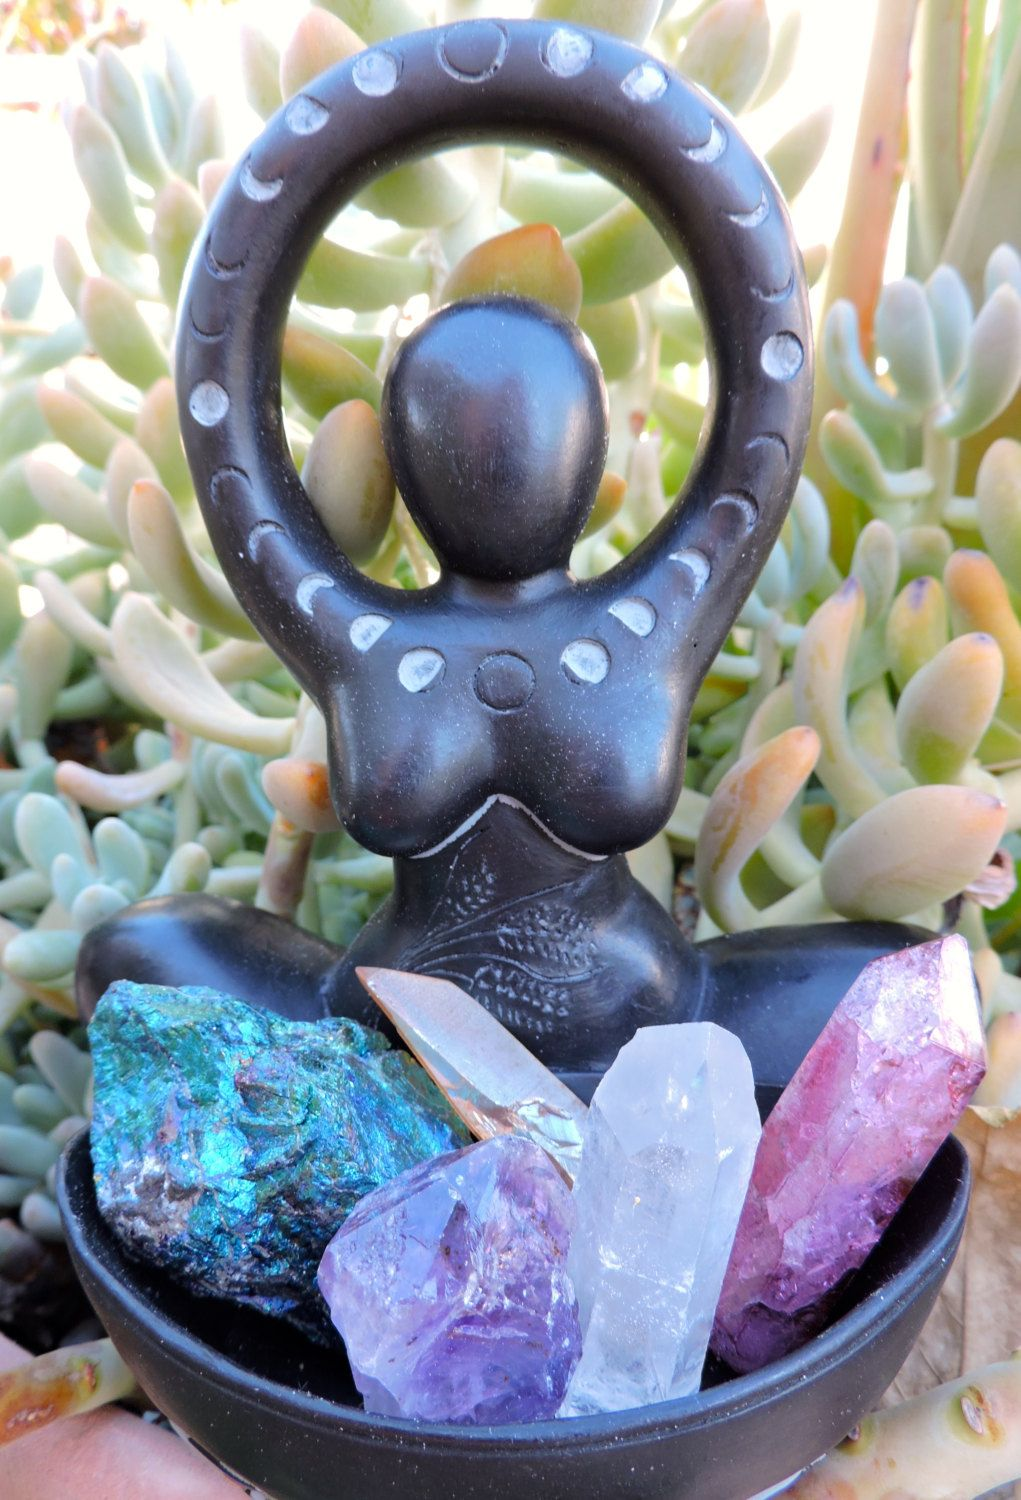 MOON GODDESS OFFERING Bowl in Black Stone resin by Abby Willowroot ~ Sale + Reduced S/H + Small gift by THEMAGICKWIZARD on Etsy https://www.etsy.com/uk/listing/471072948/moon-goddess-offering-bowl-in-black